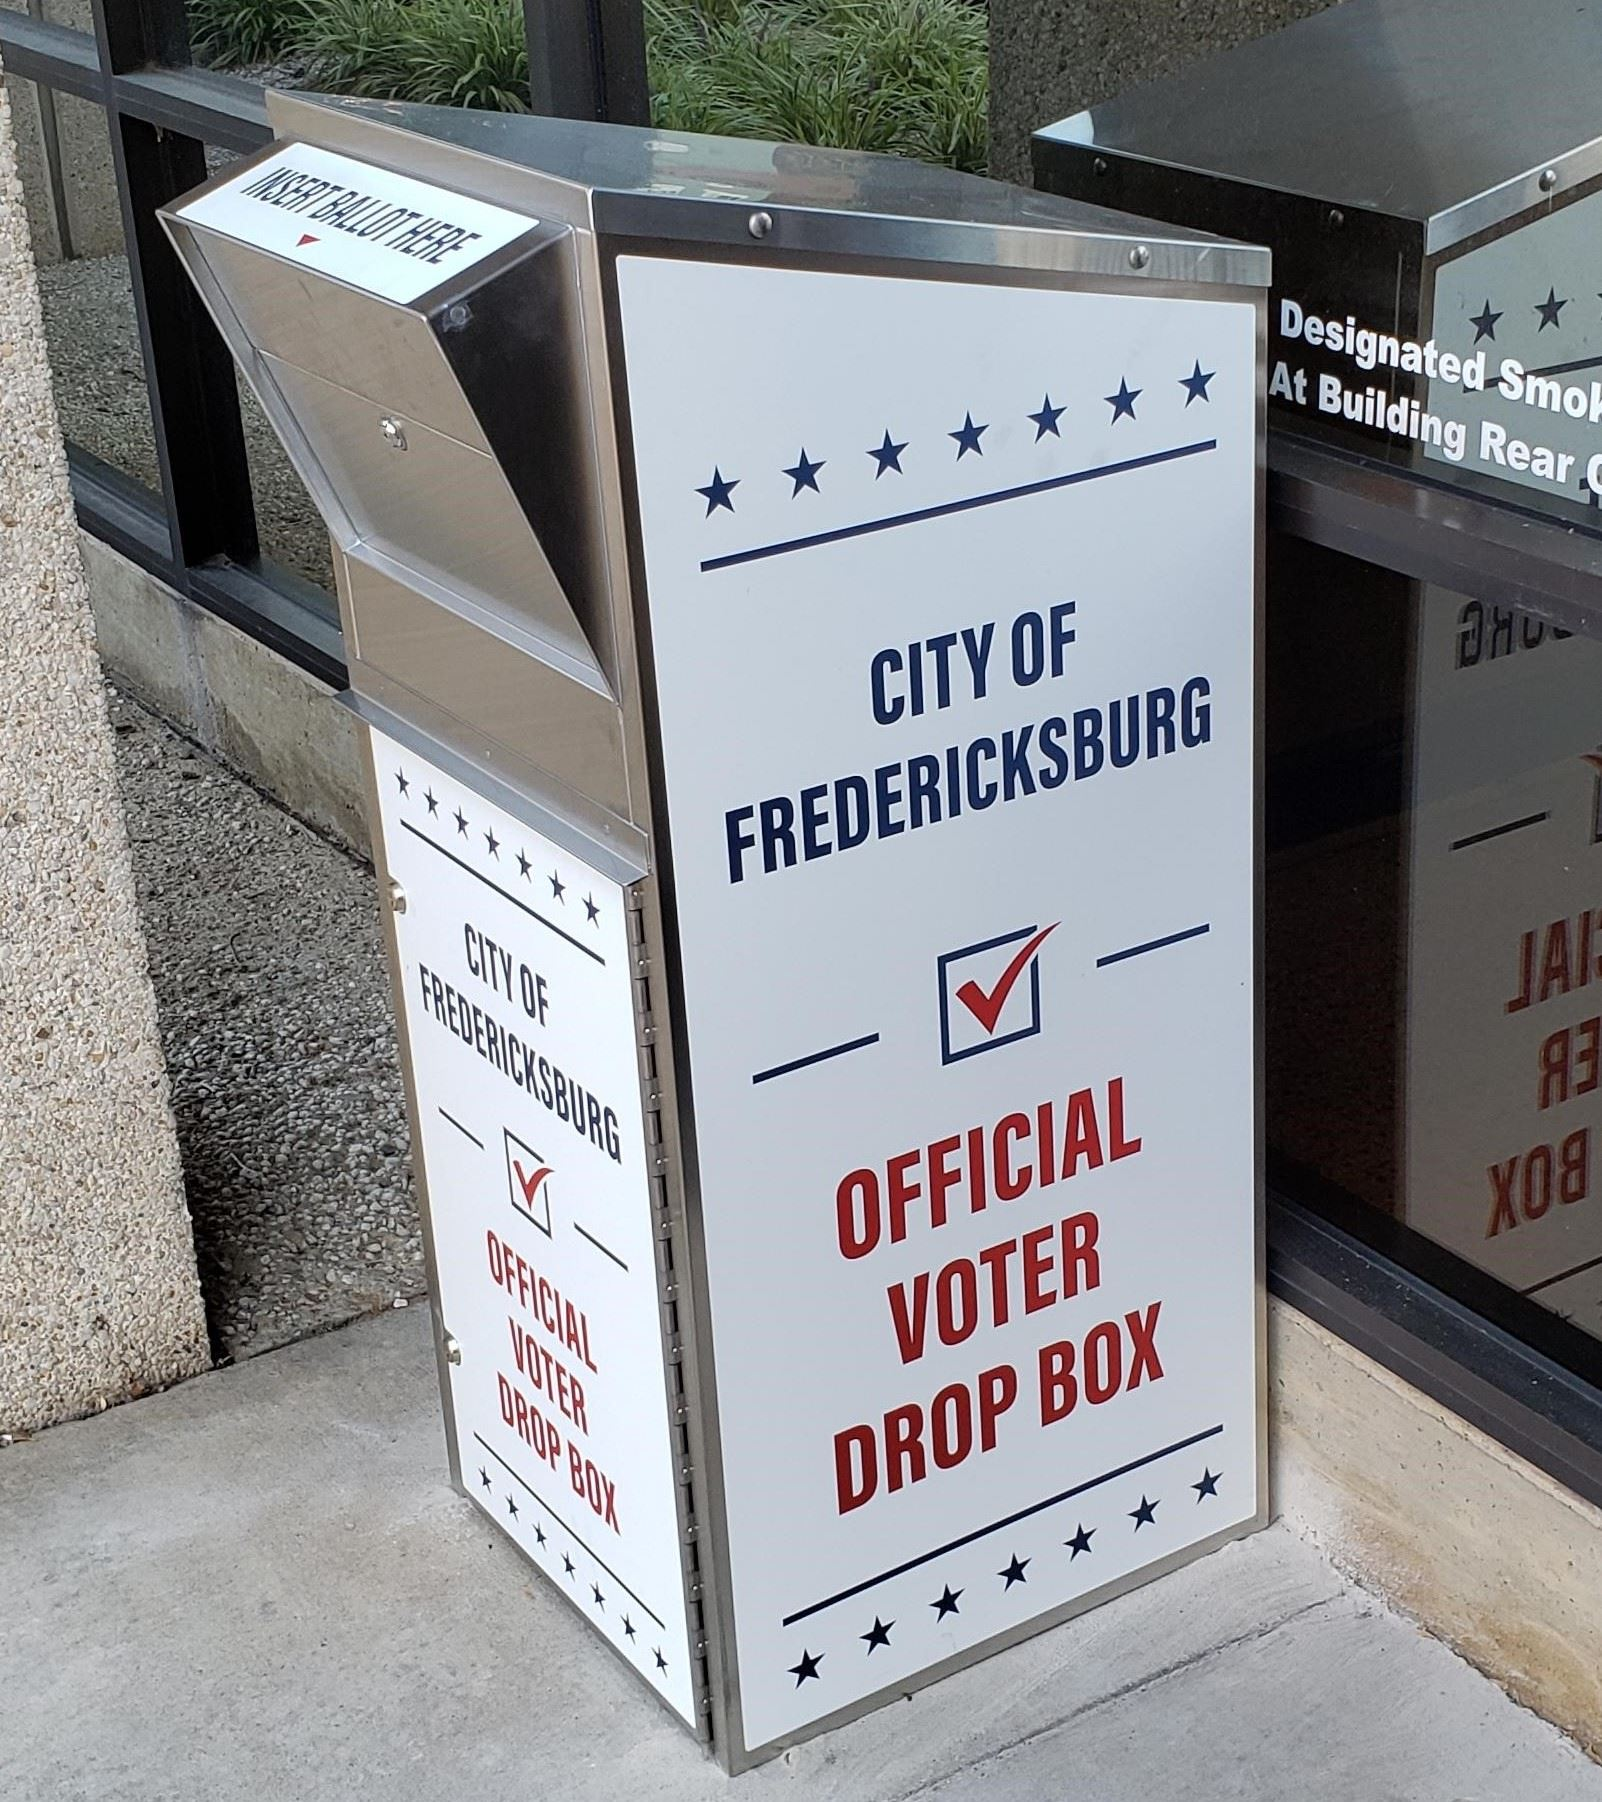 Voter Drop Box Image